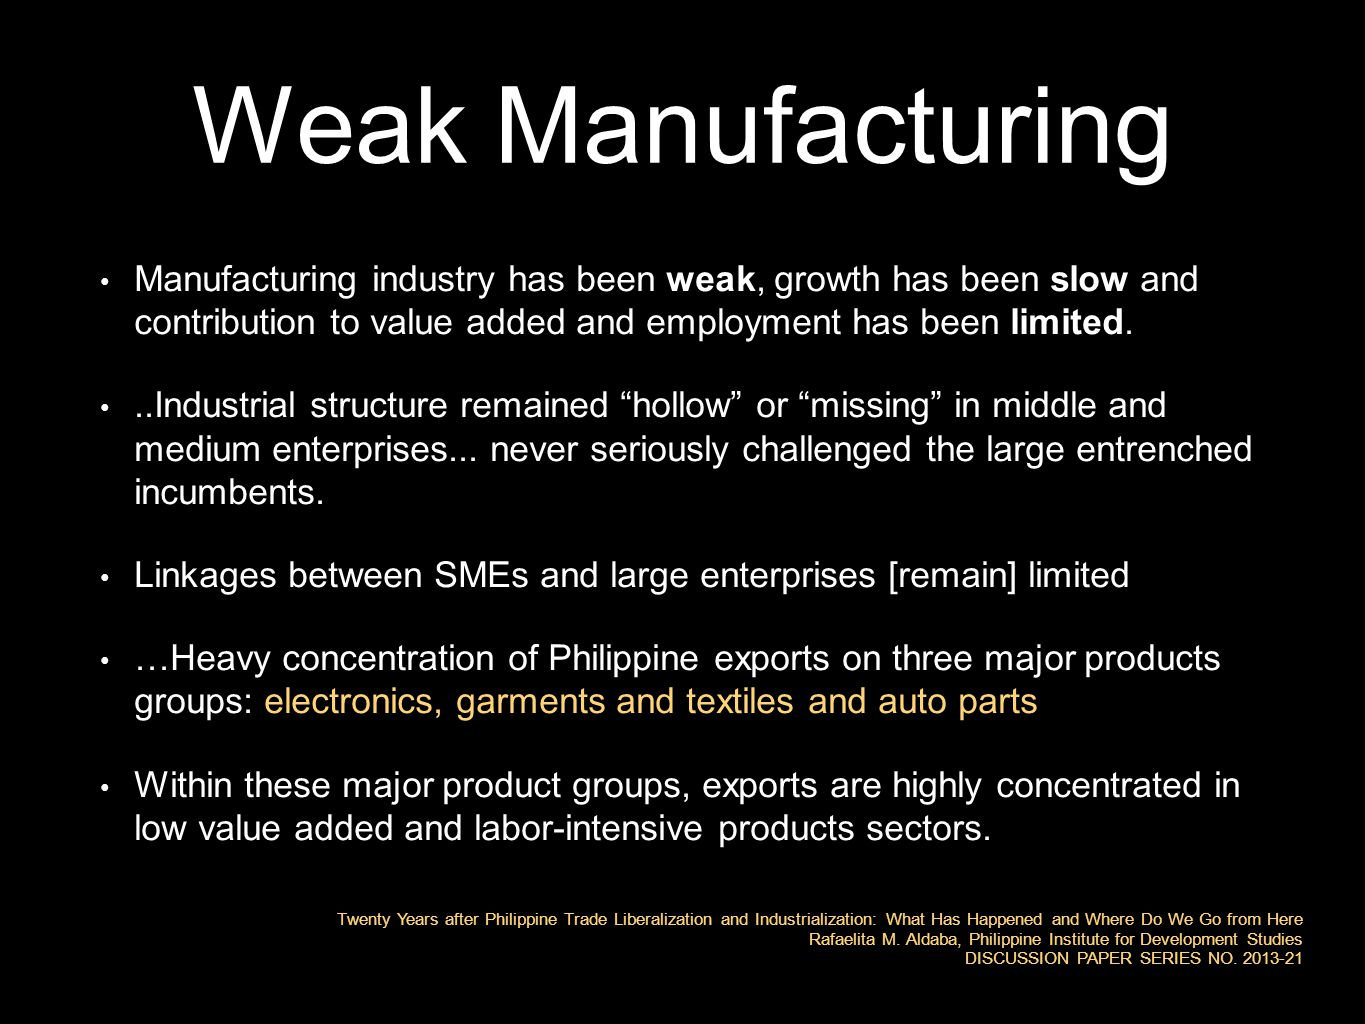 Weak Manufacturing Manufacturing industry has been weak, growth has been slow and contribution to value added and employment has been limited...Industrial structure remained hollow or missing in middle and medium enterprises...